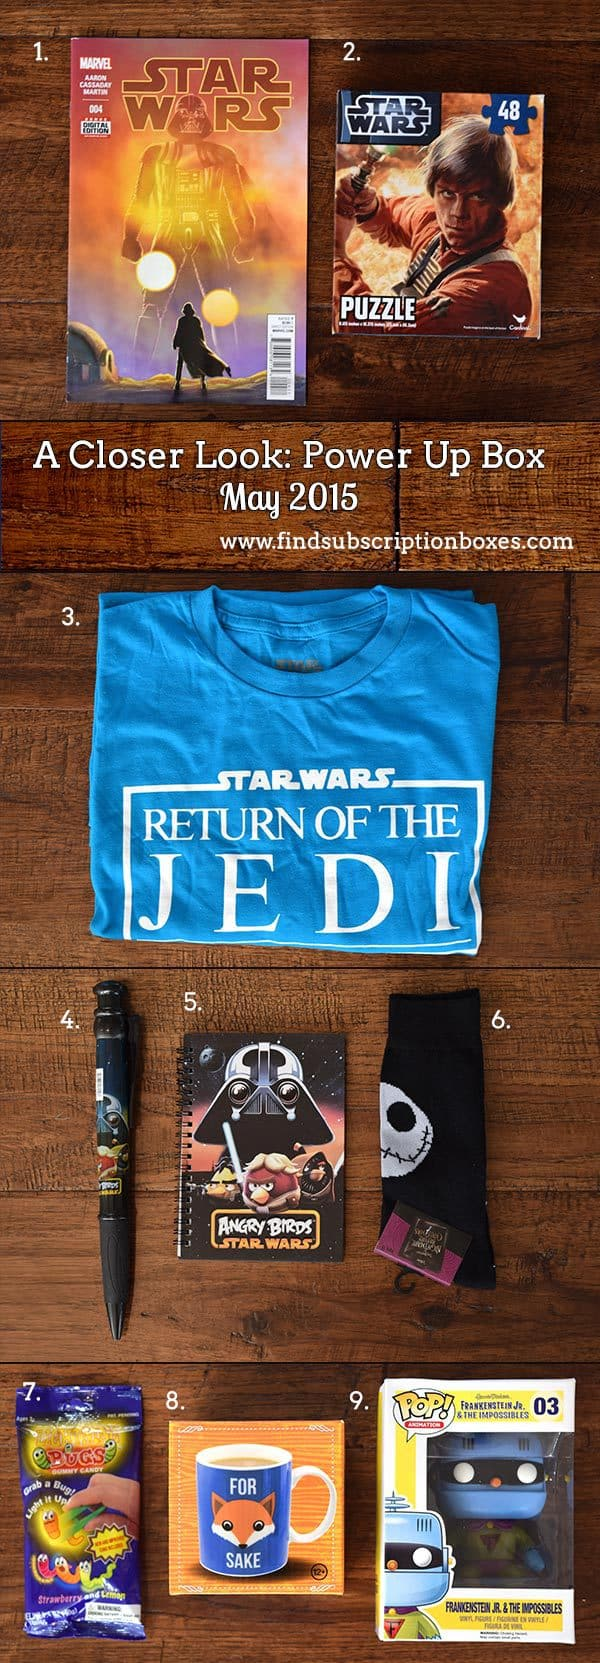 Power Up Box May 2015 Box Review - Inside the Box